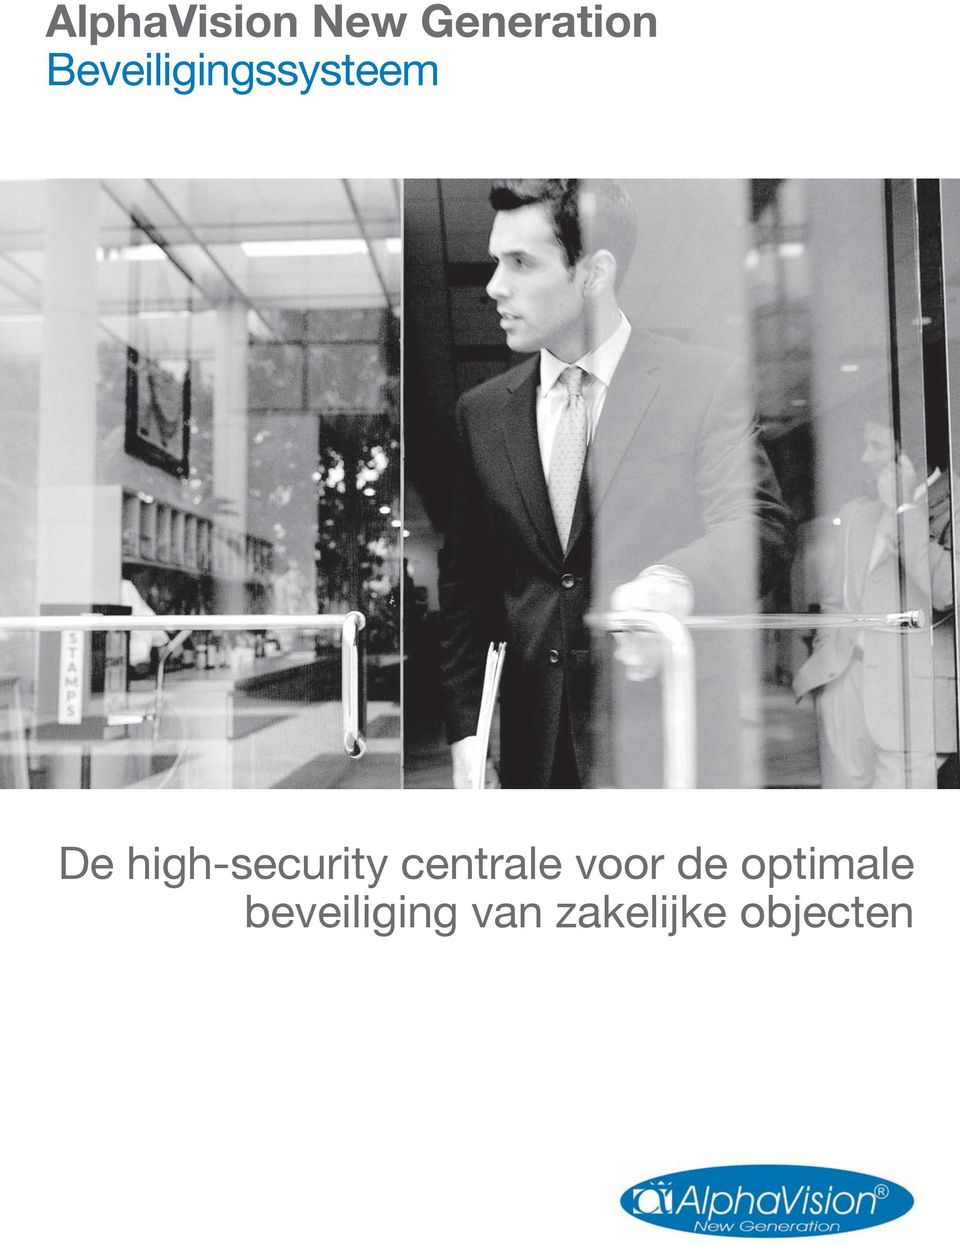 high-security centrale voor de